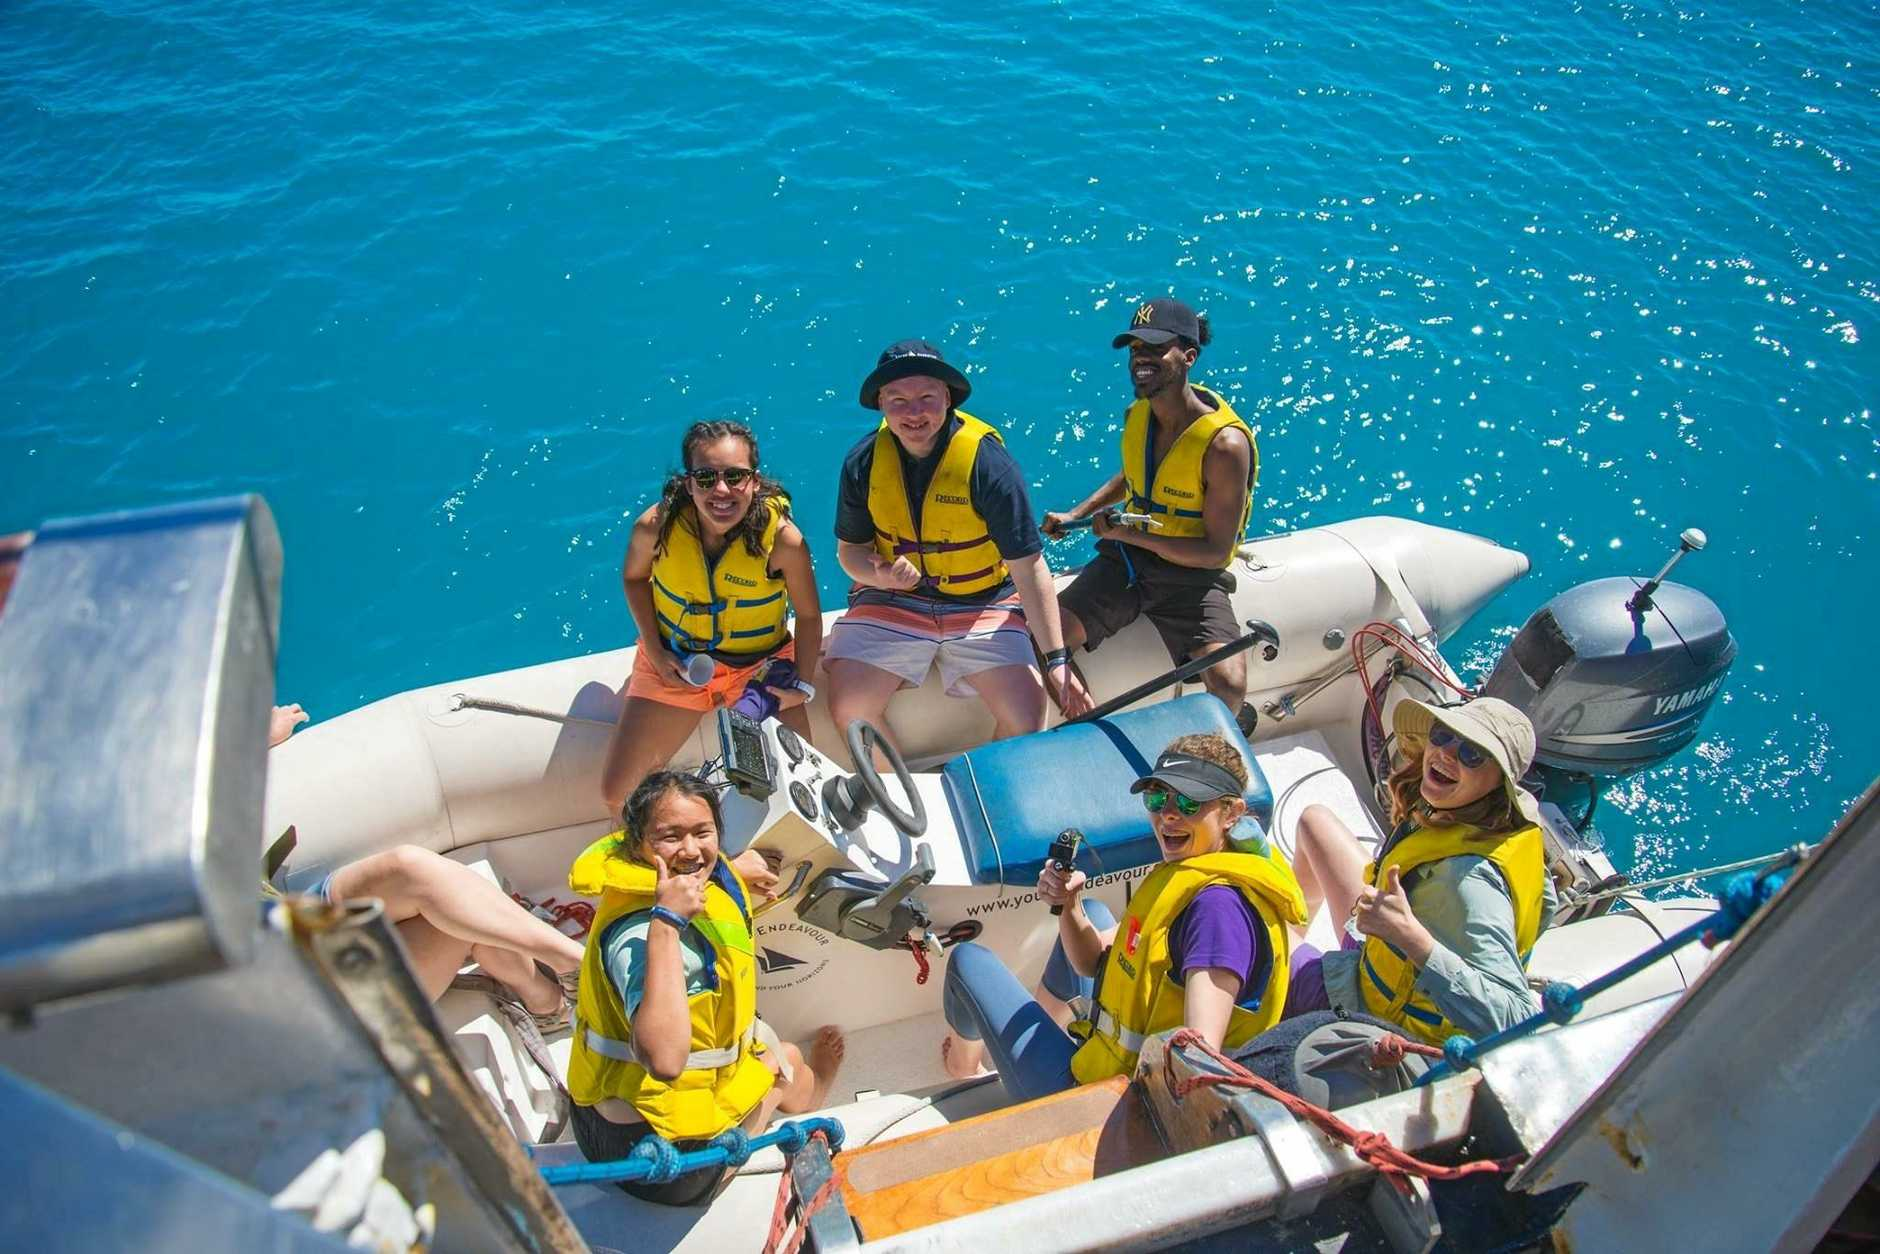 James Nash State School student Jacinta Olsen on board the STS Young Endeavour